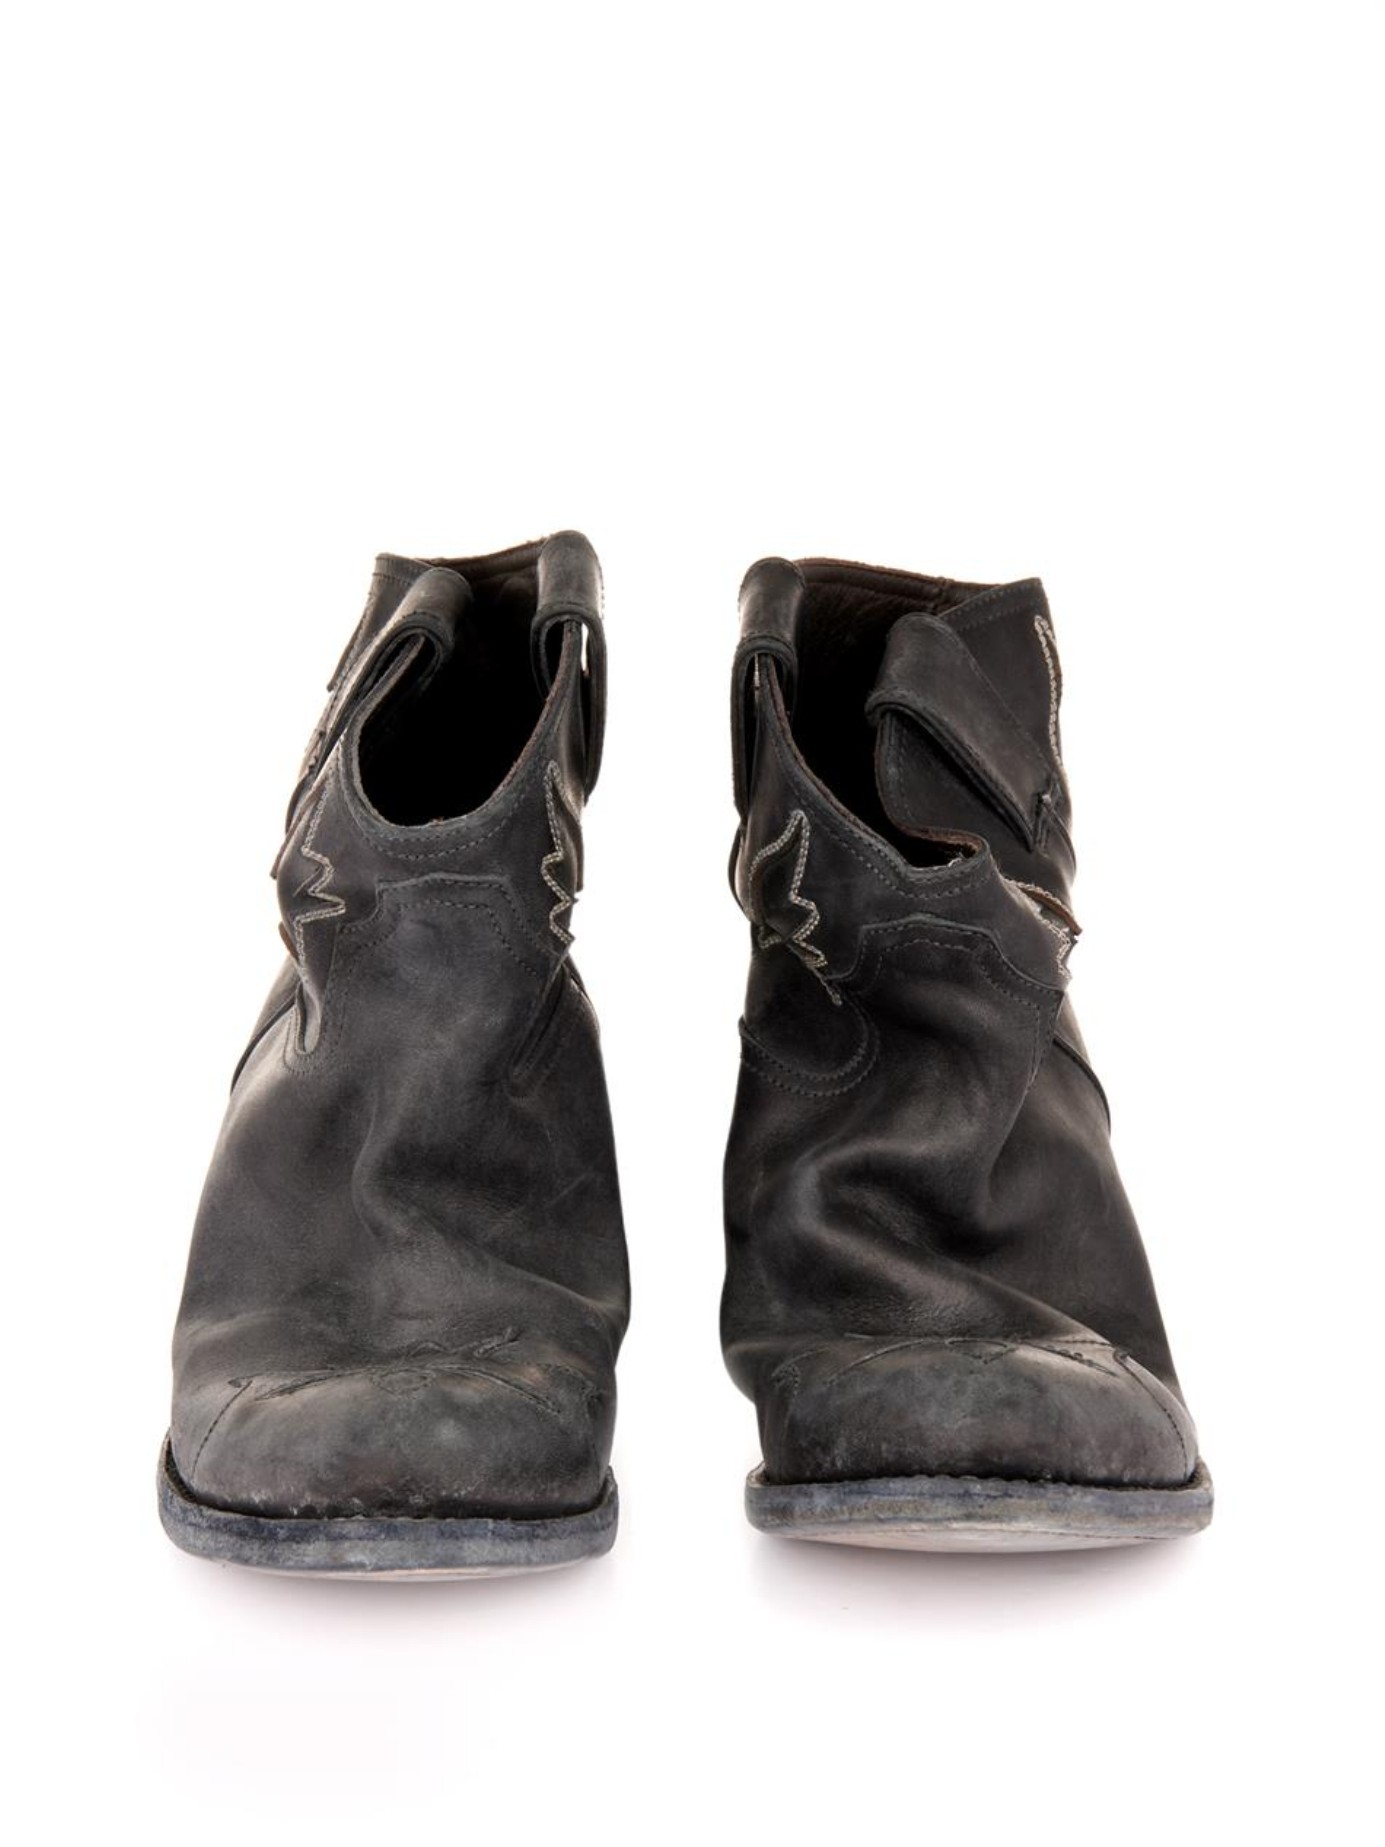 golden goose distressed ankle boots | Peninsula Conflict ...